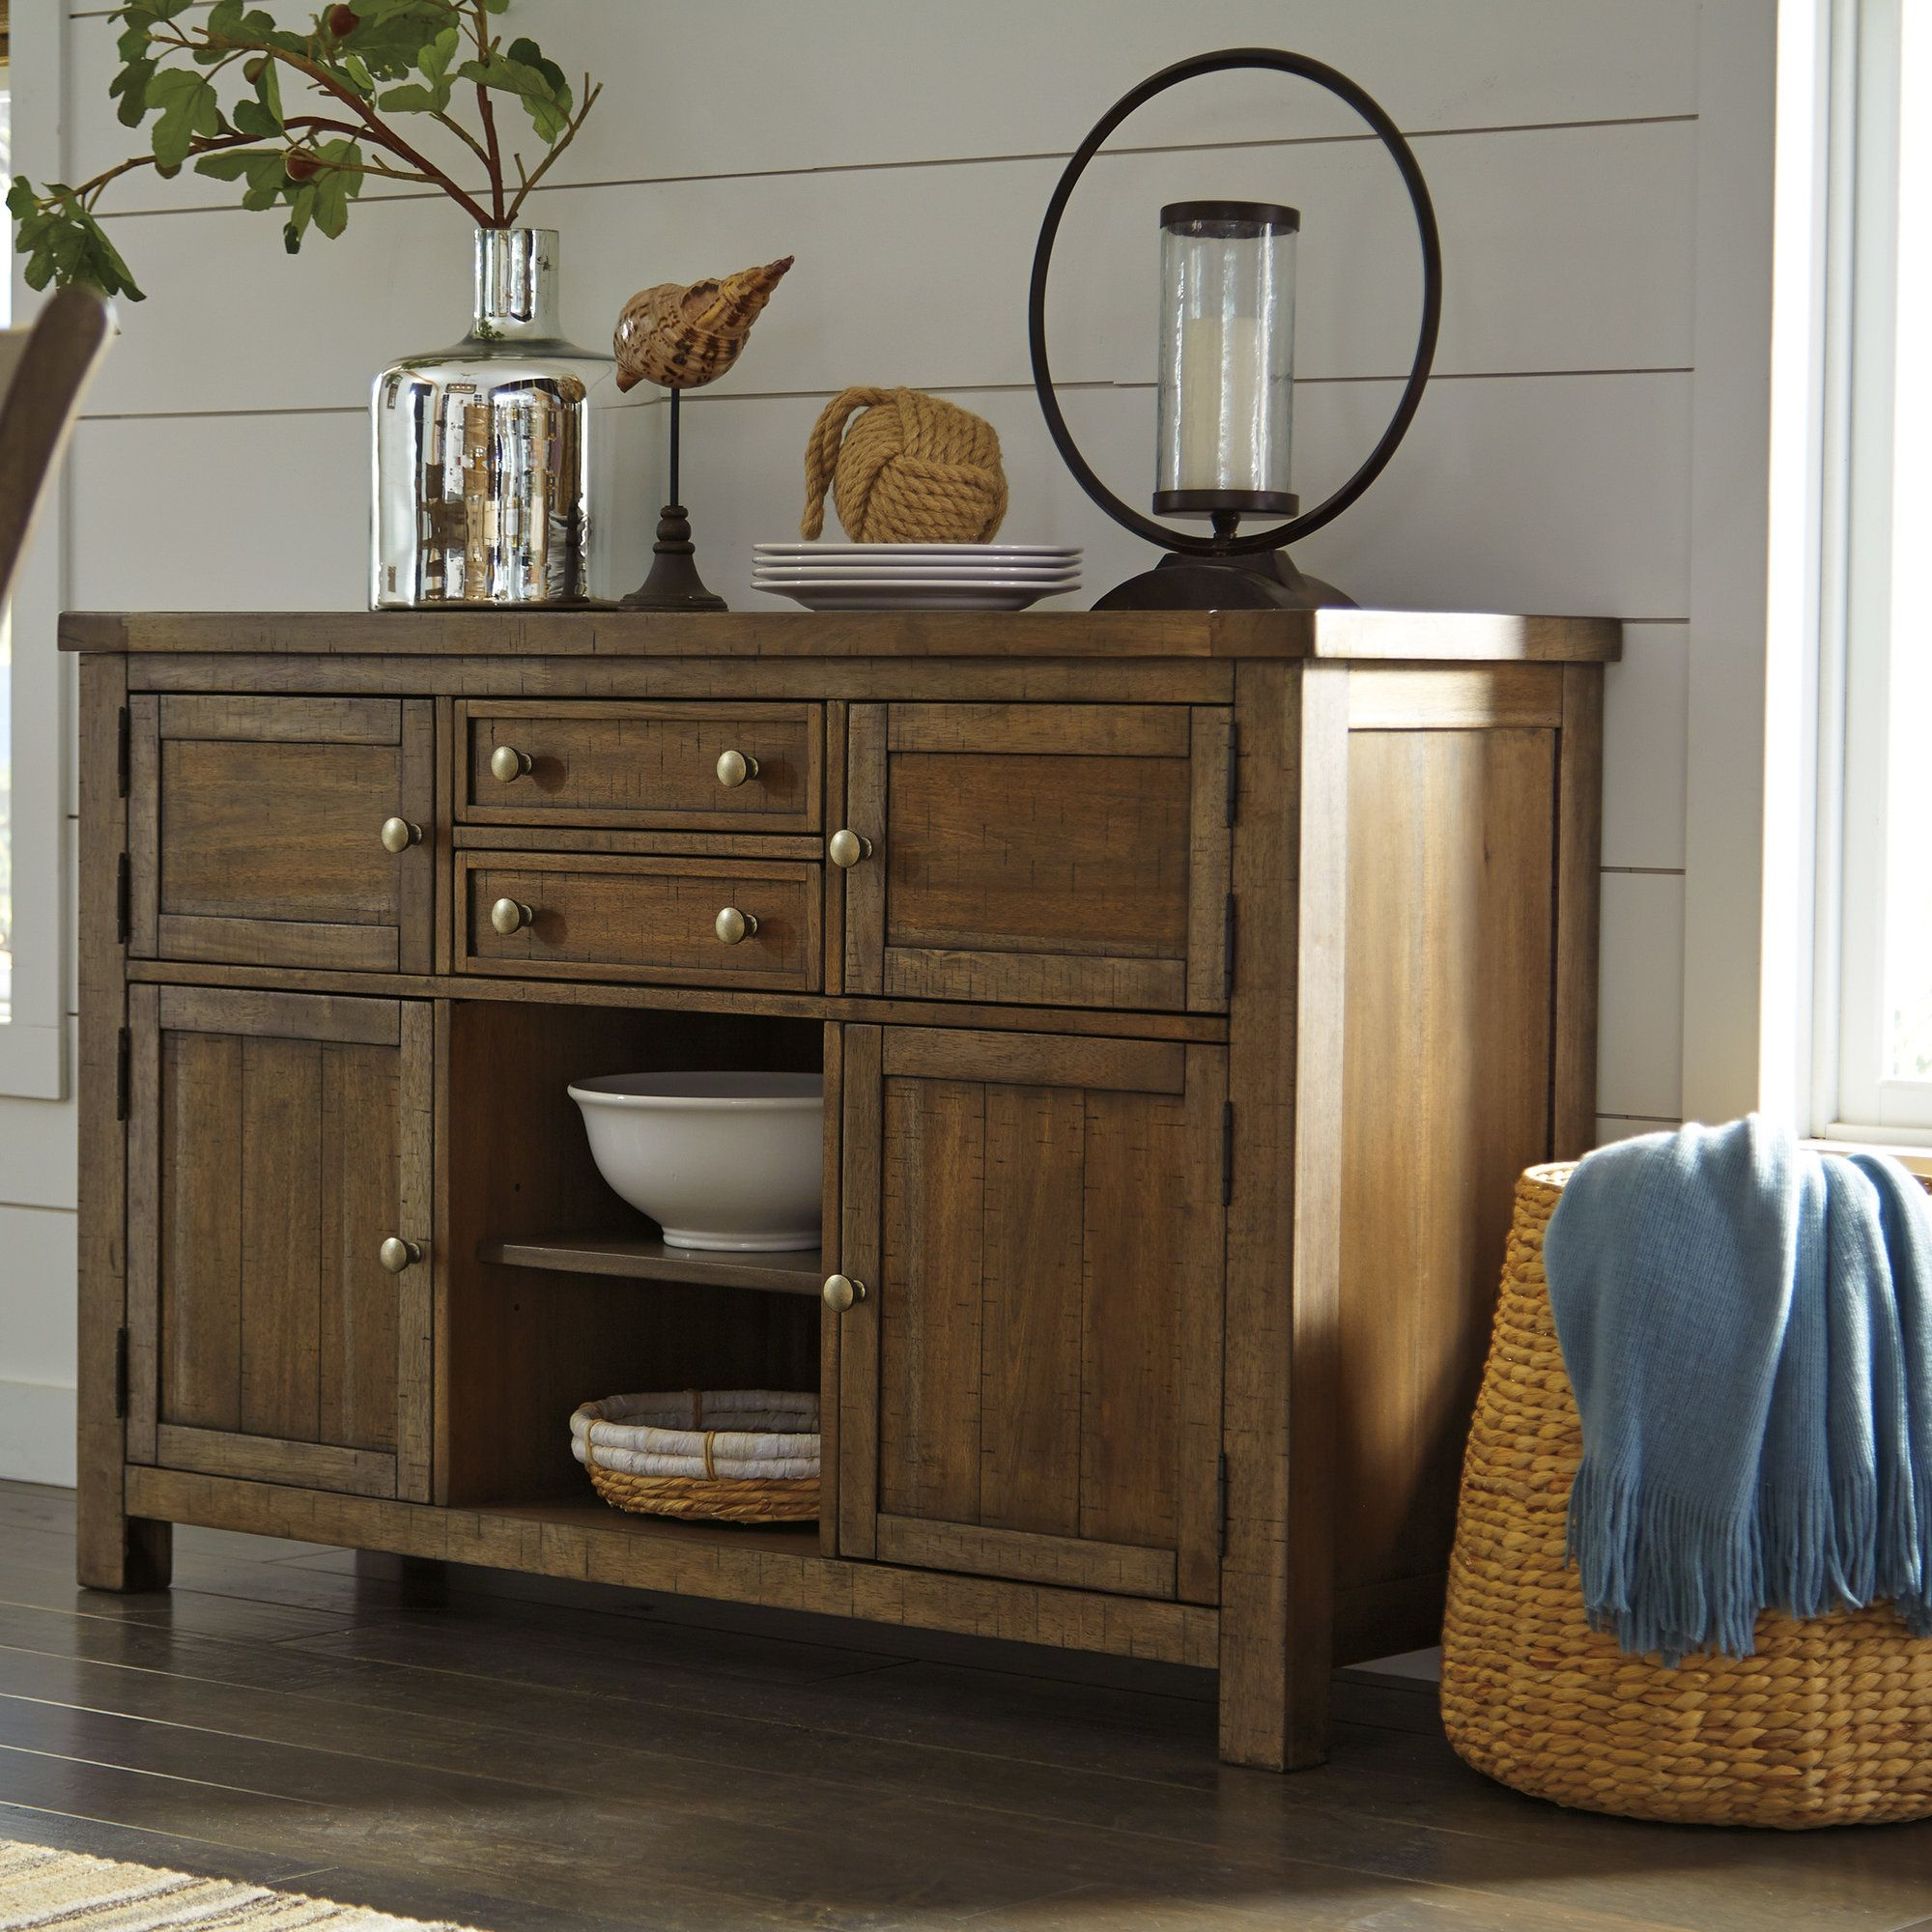 Hillary dining room buffet table products pinterest dining